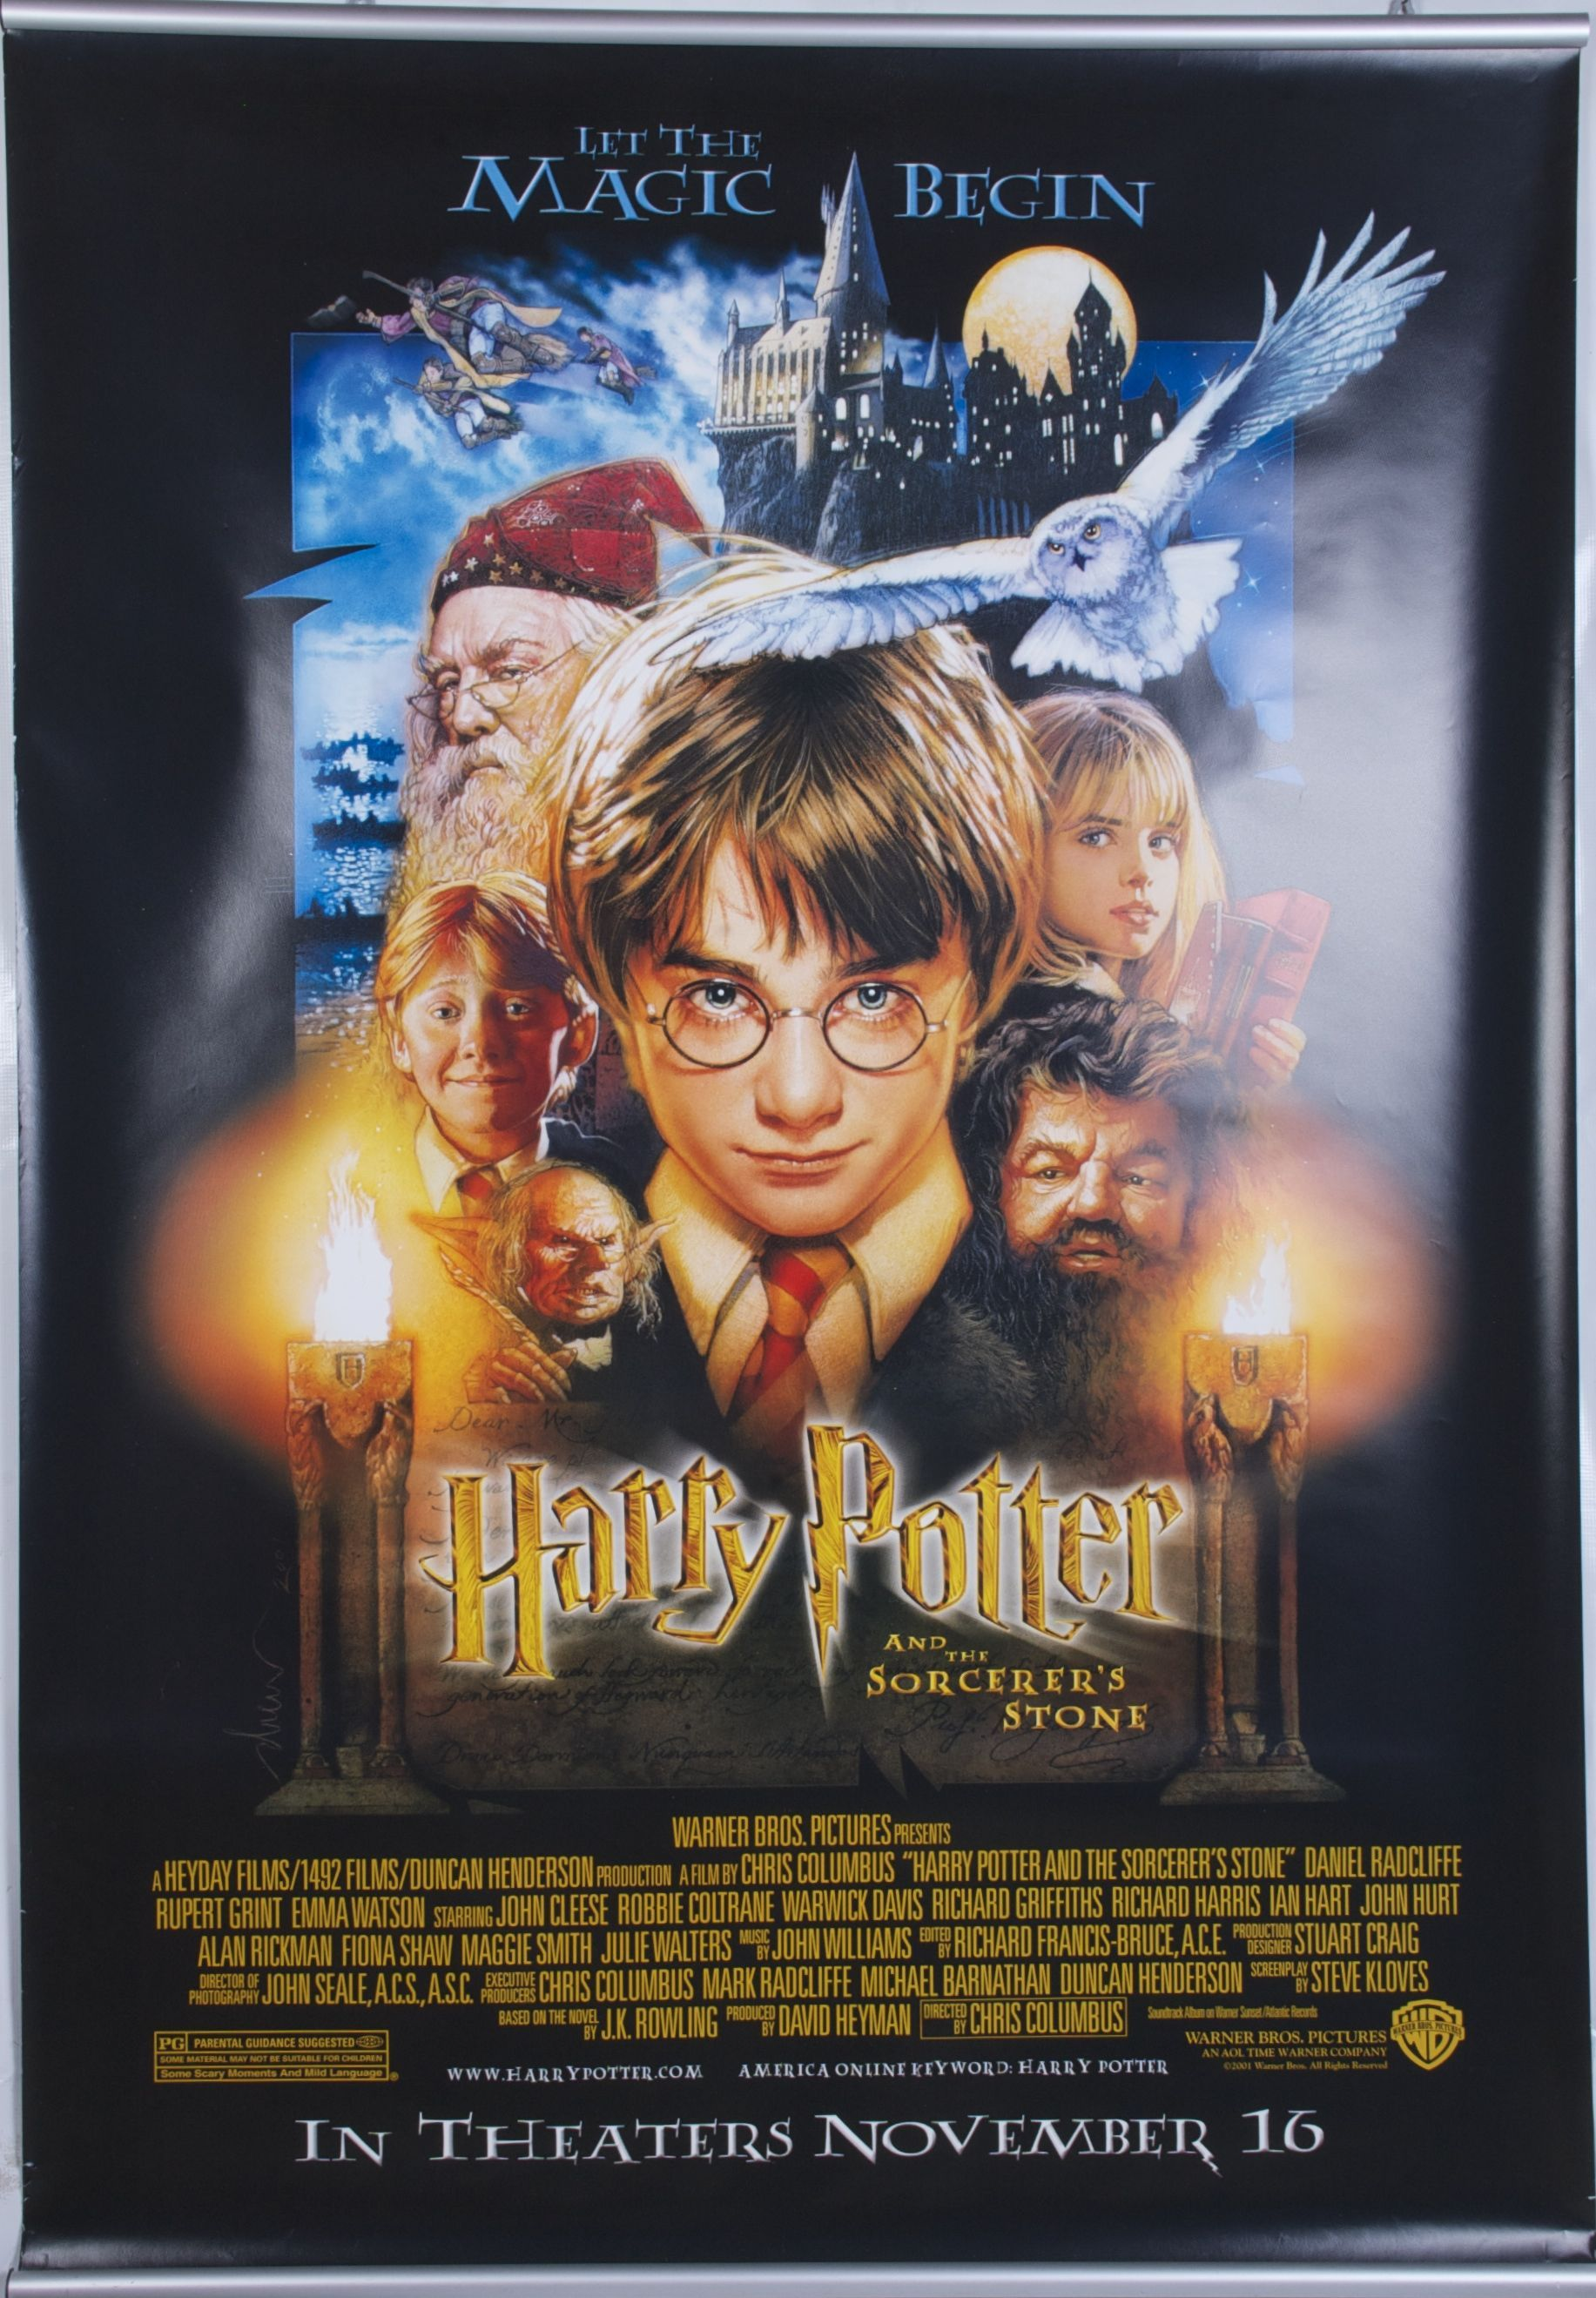 Harry Potter And The Sorcerer S Stone Poster Harry Potter Movie Posters Harry Potter Movie Night Harry Potter Poster